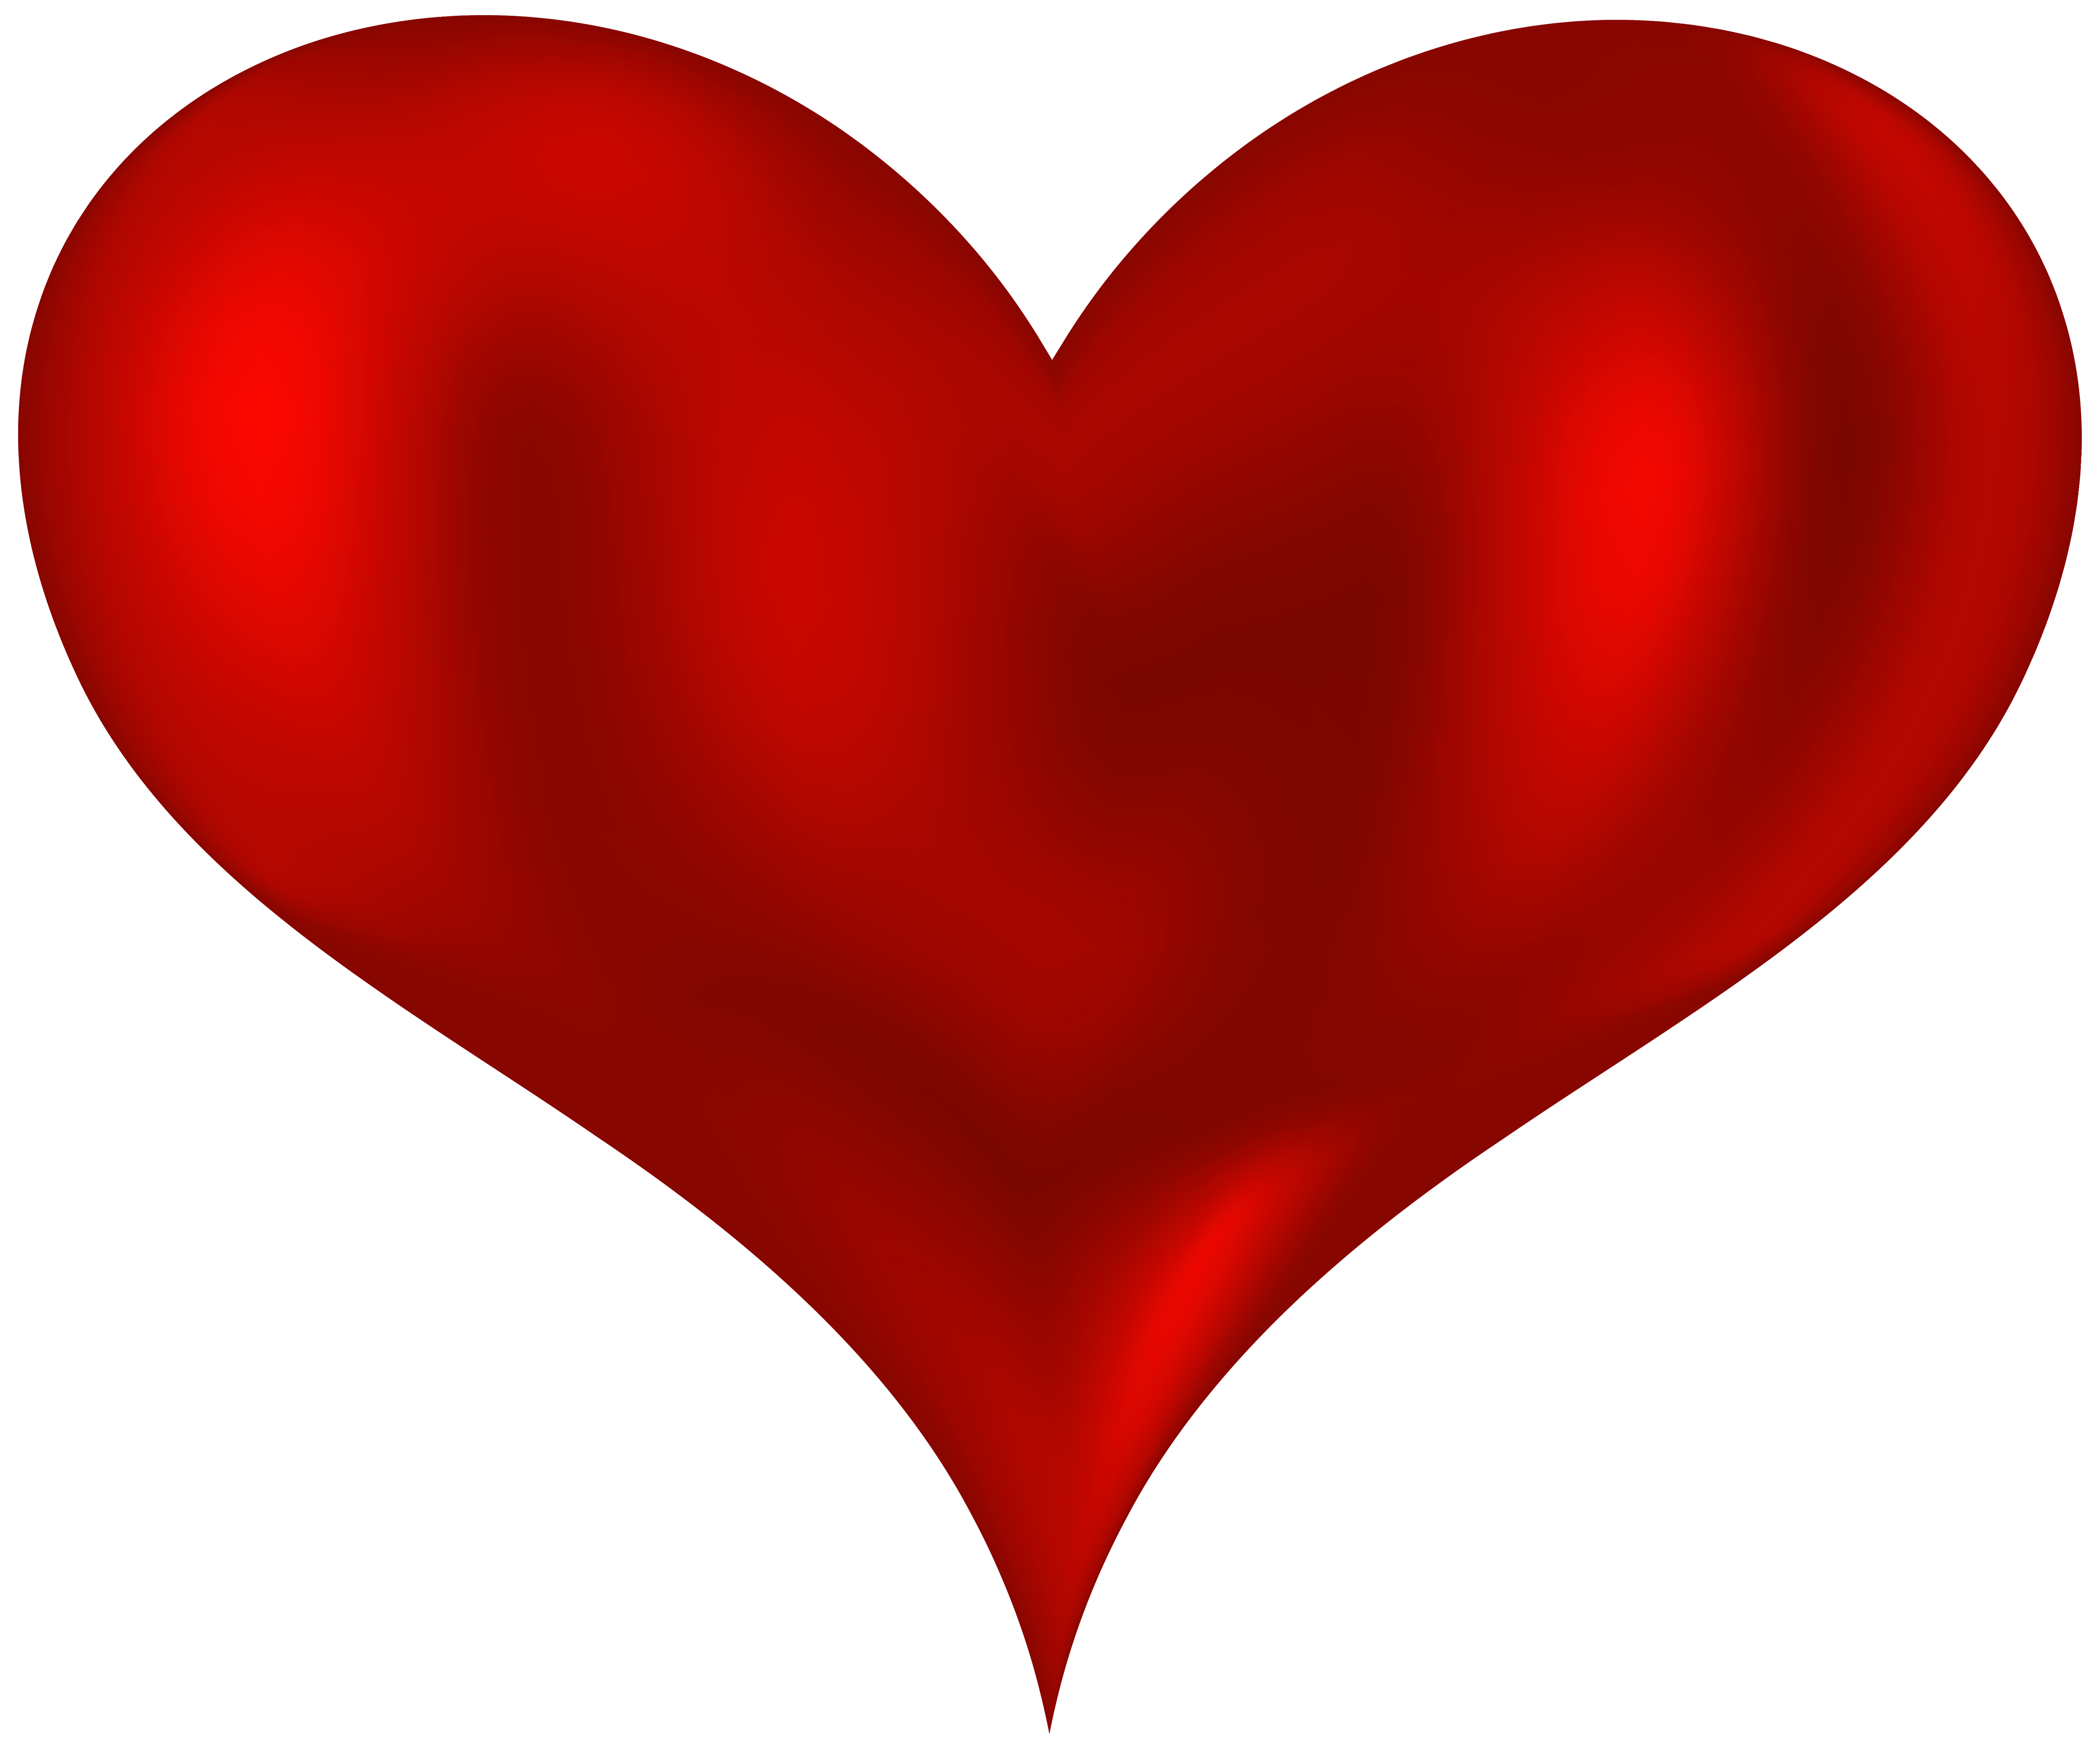 Red clipart heart image royalty free stock Beautiful Heart Red PNG Clipart - Best WEB Clipart image royalty free stock